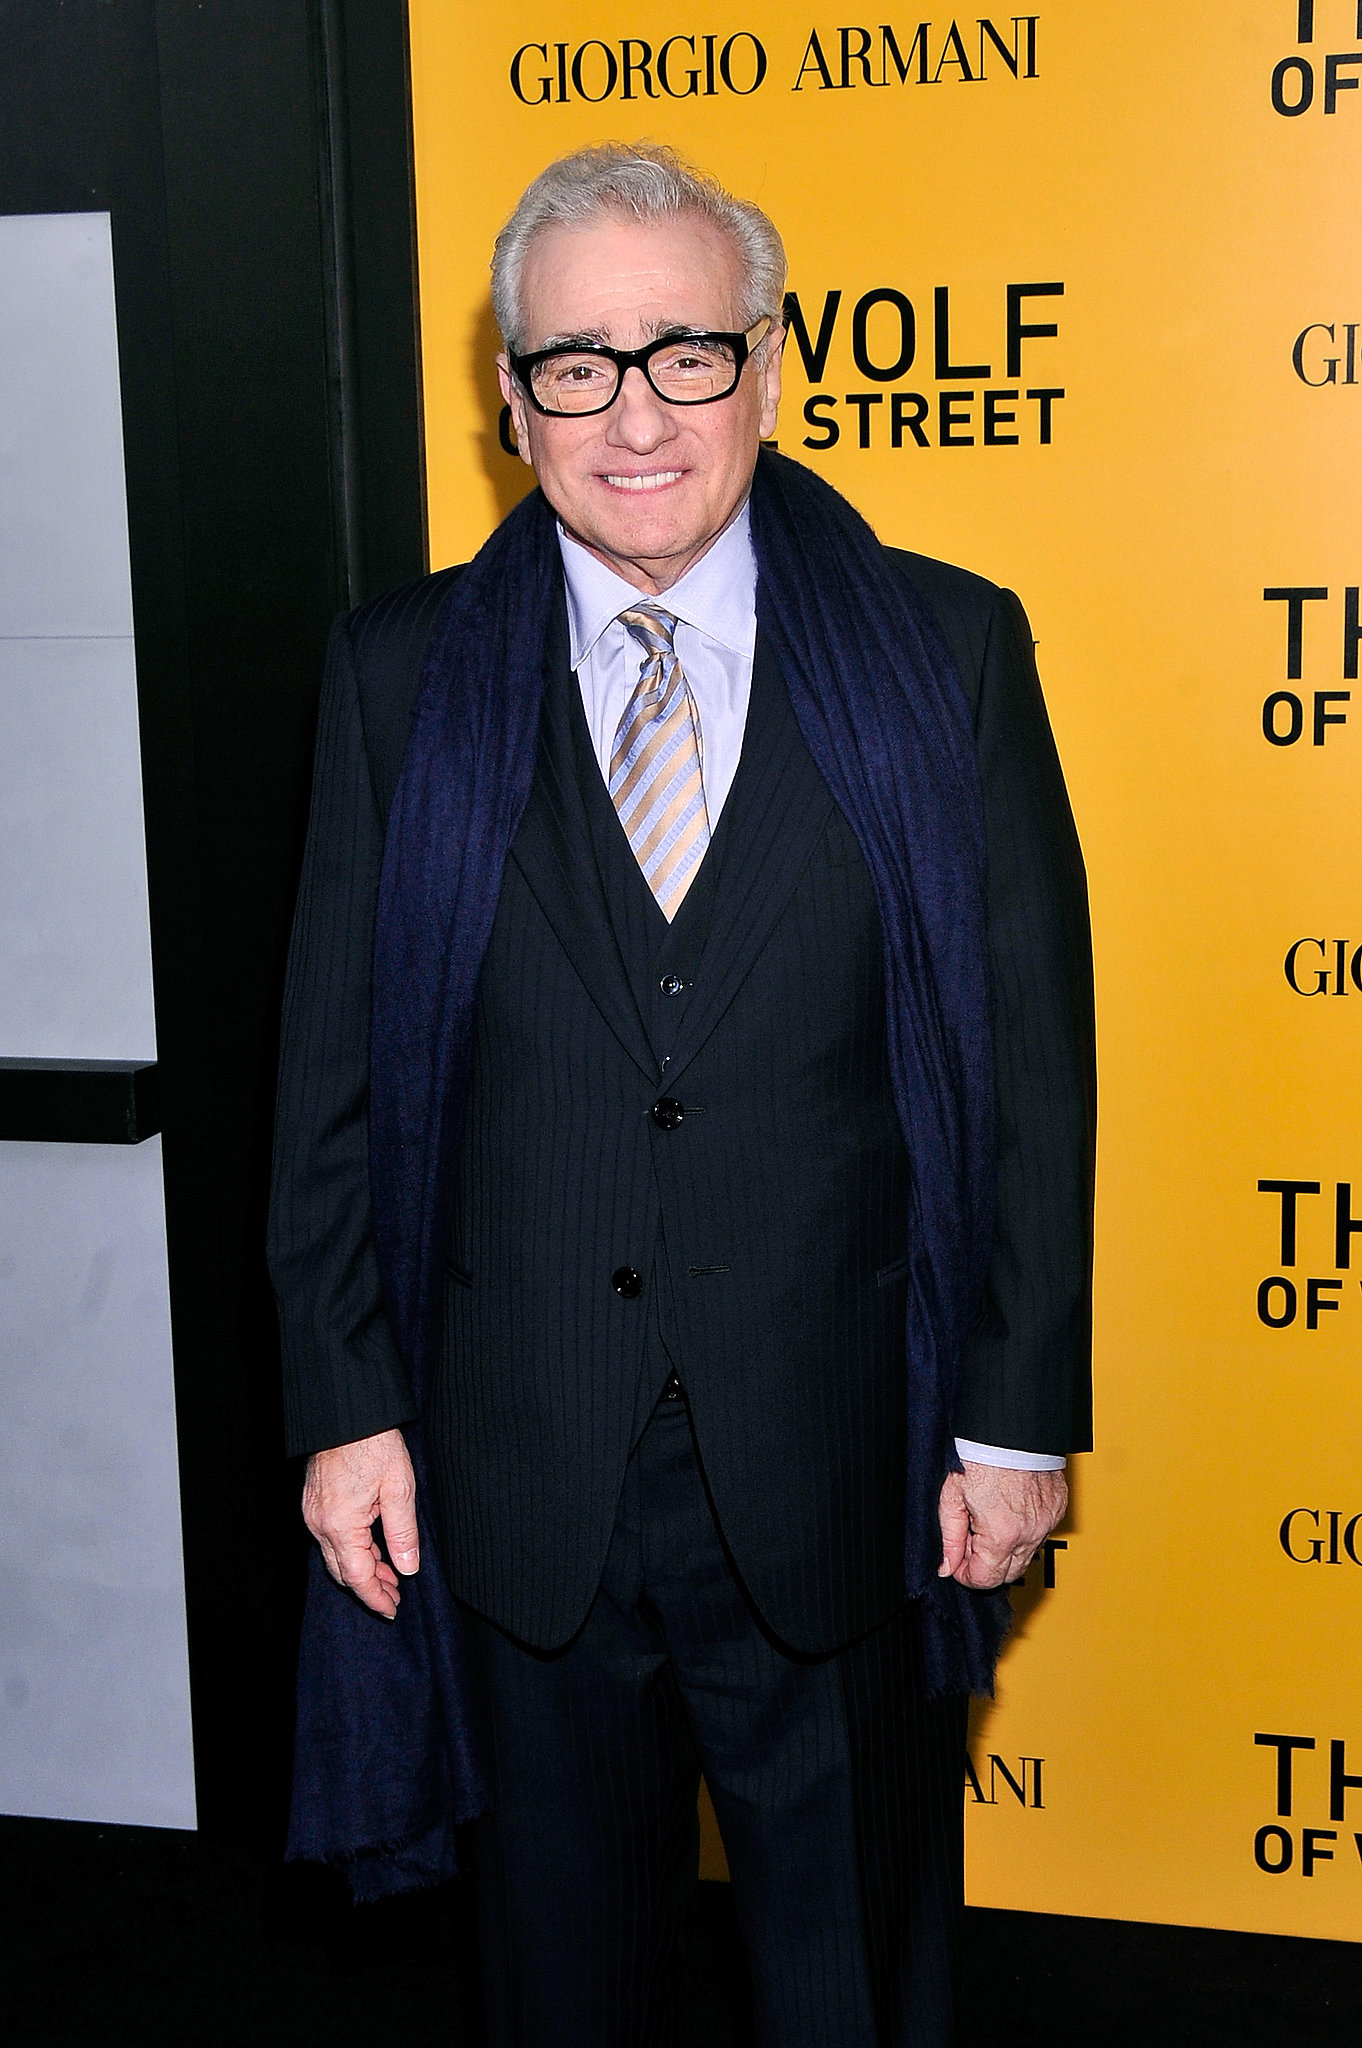 Director Martin Scorcese was on hand to premiere The Wolf of Wall Street.